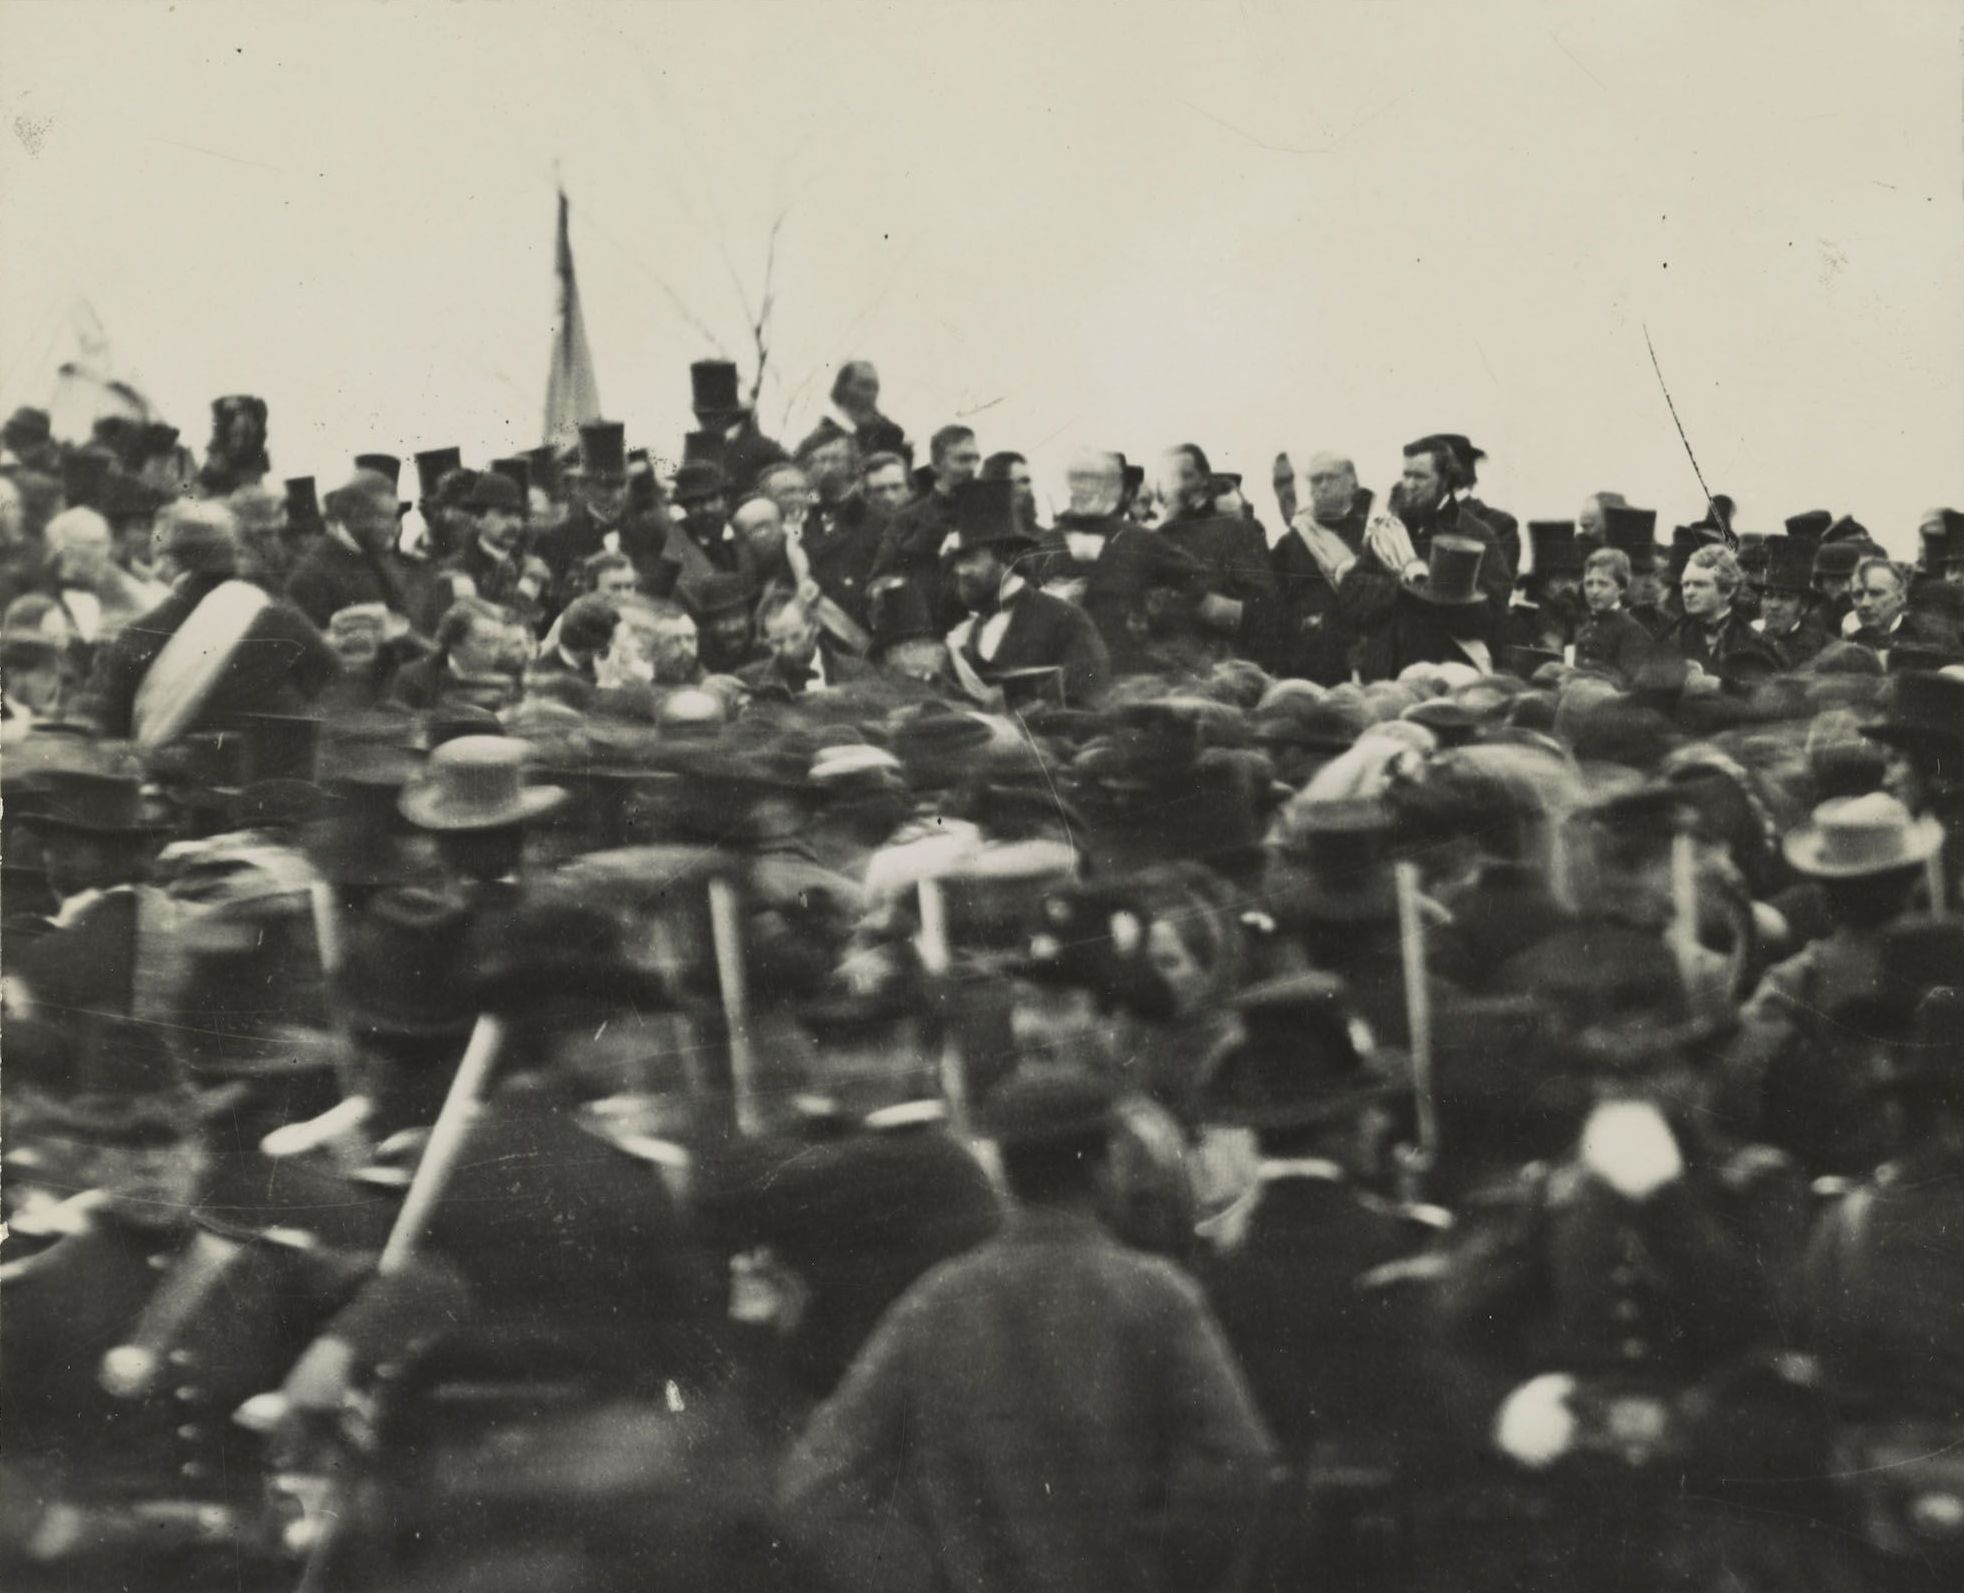 One of three known photos of Abraham Lincoln at the dedication of the Soldiers' National Cemetery in Gettysburg, Pennsylvania, on November 19, 1863. Made from the original glass plate negative at the National Archives which had lain unidentified for fifty-five years until 1952 when Josephine Cobb recognized Lincoln in the image. To Lincoln's right is bodyguard Ward Hill Lamon. To his far left is Governor Andrew G. Curtin of Pennsylvania. The photograph is estimated to have been taken at about noontime, just after Lincoln arrived, before Edward Everett's arrival and about three hours before Lincoln gave his famous Gettysburg Address. 19 November 1863. Image by David Bachrach (1845-1921). This image (or other media file) is in the public domain because its copyright has expired. Source: https://commons.wikimedia.org/wiki/File:Lincolnatgettysburg.jpg